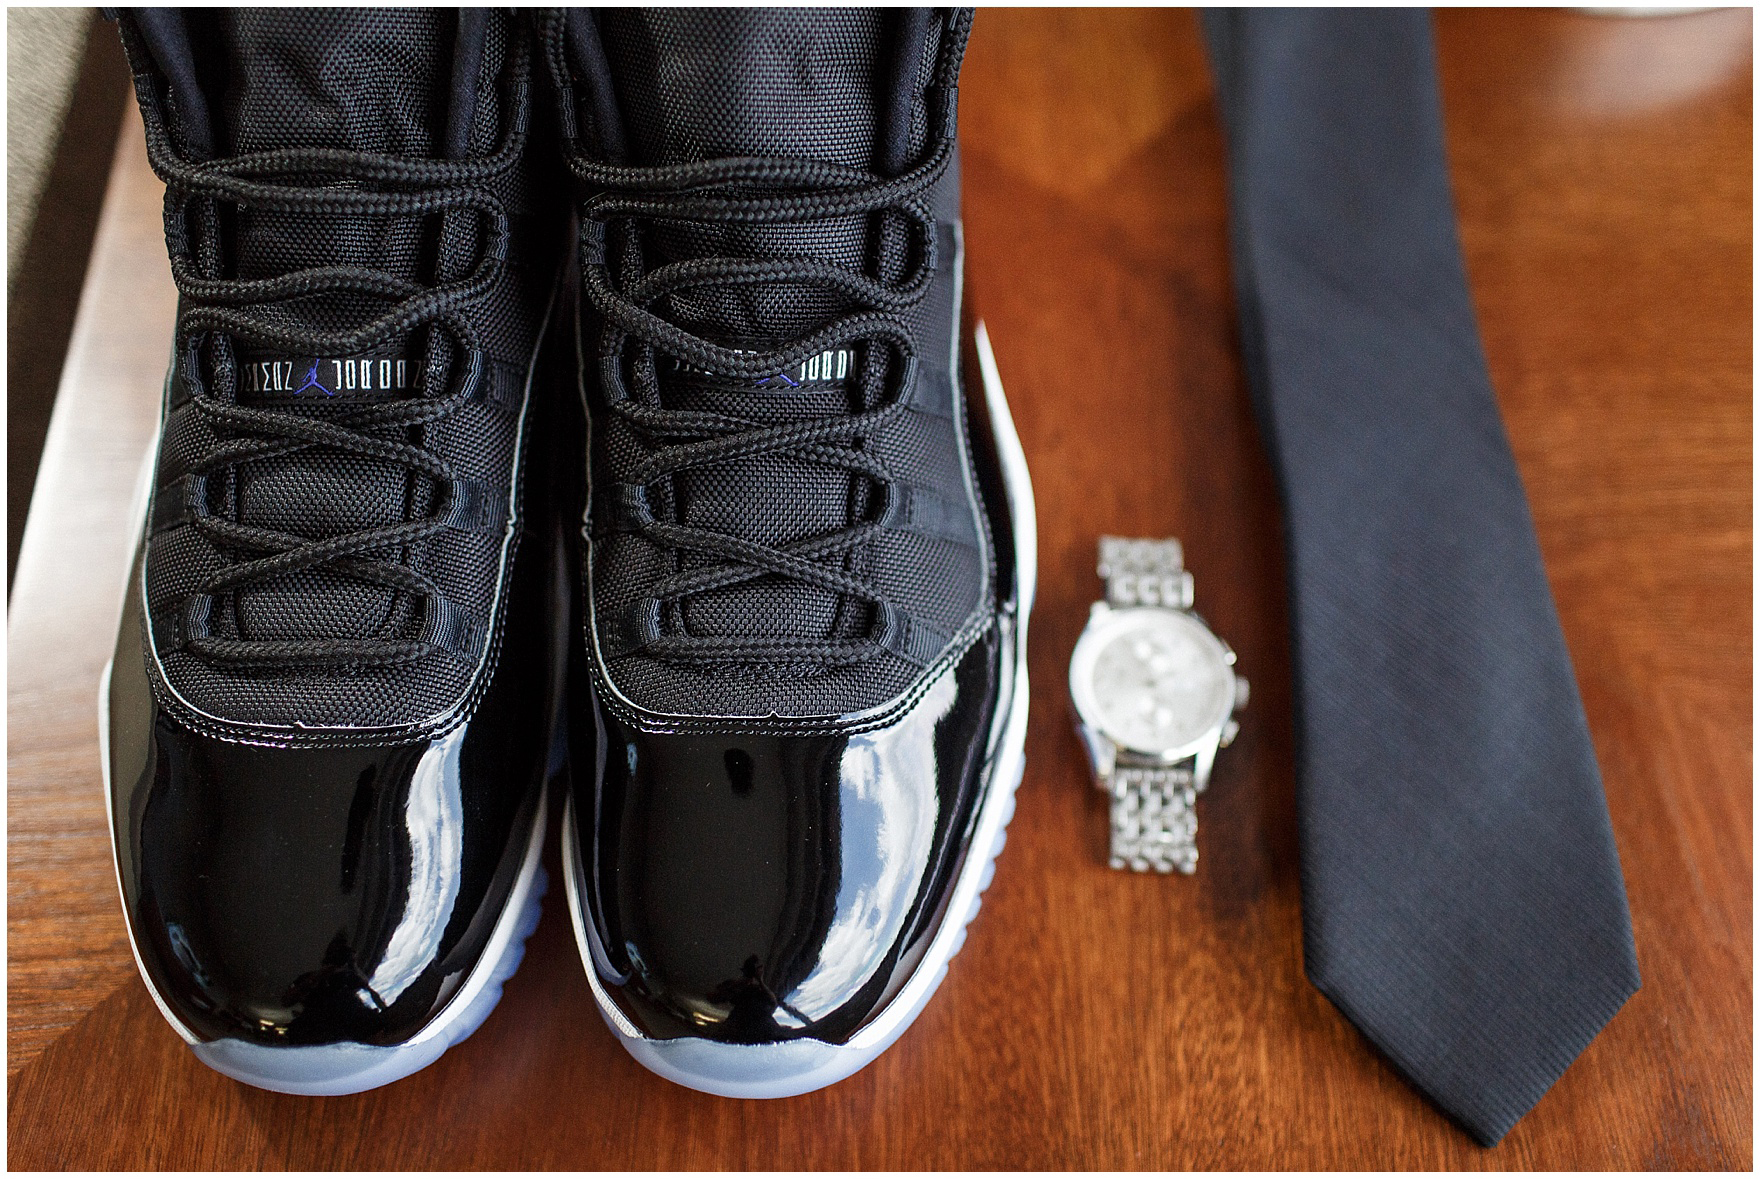 Details of the groom's Jordans, watch and tie for an Itasca Country Club Illinois wedding.